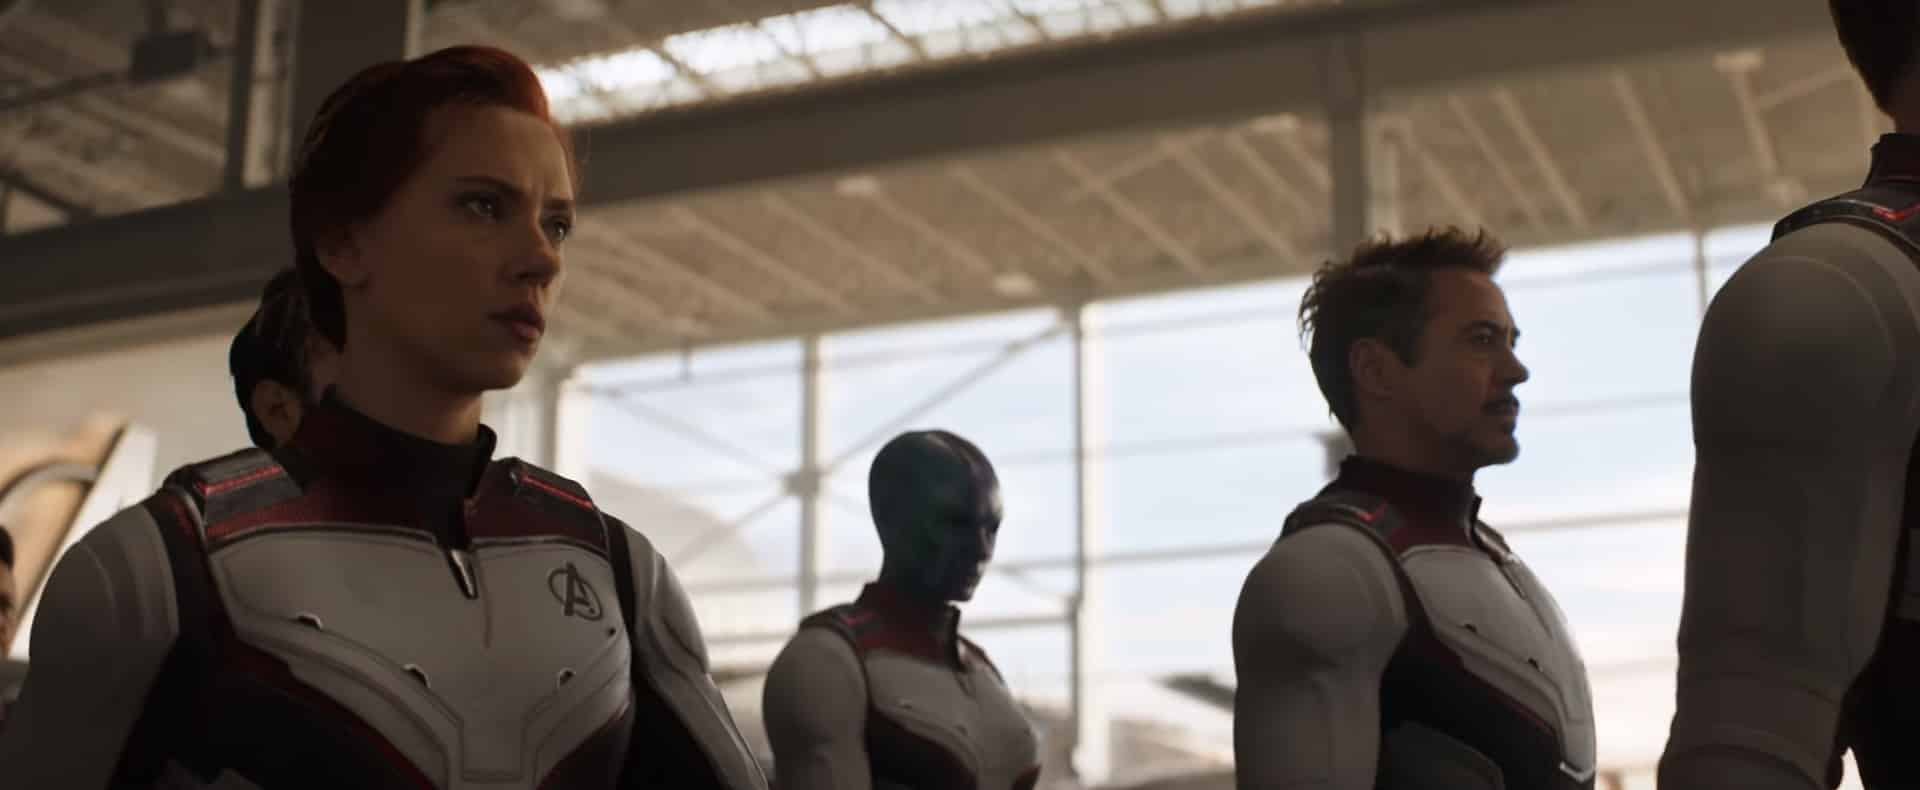 avengers: endgame cinematographe.it